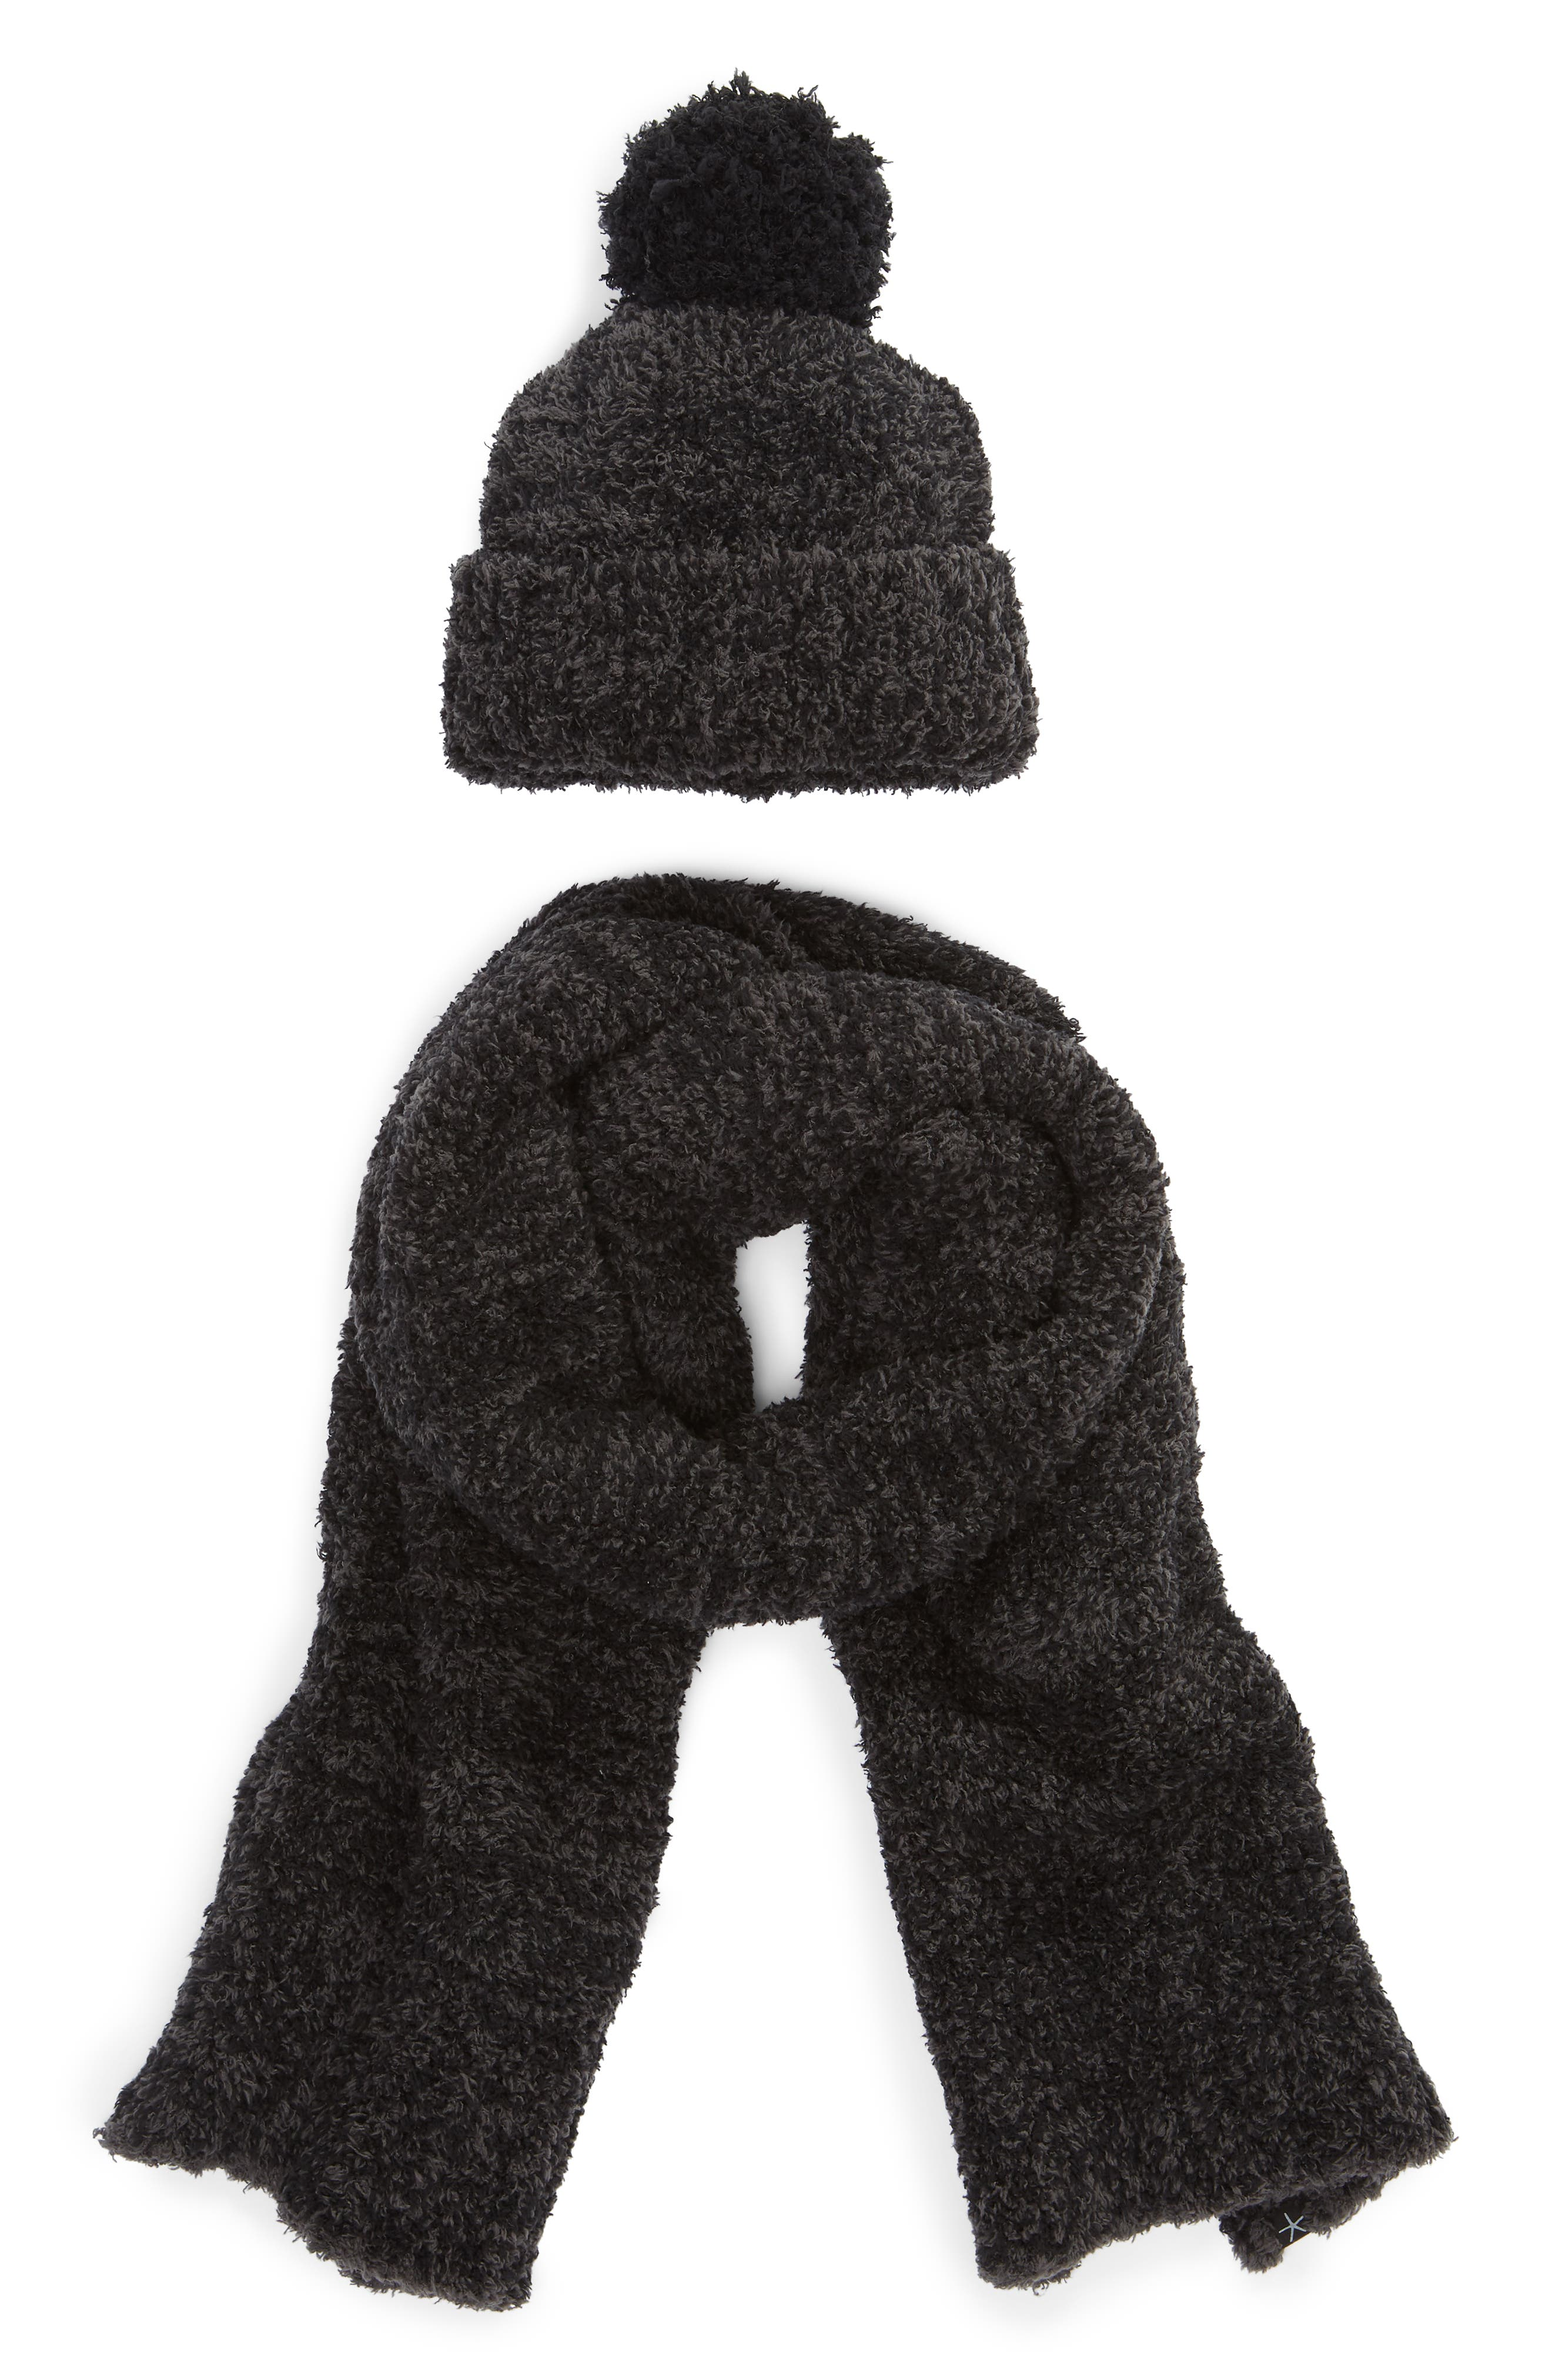 BAREFOOT DREAMS<SUP>®</SUP>, Barefoot Dreams Pompom Beanie & Scarf Set, Main thumbnail 1, color, 024